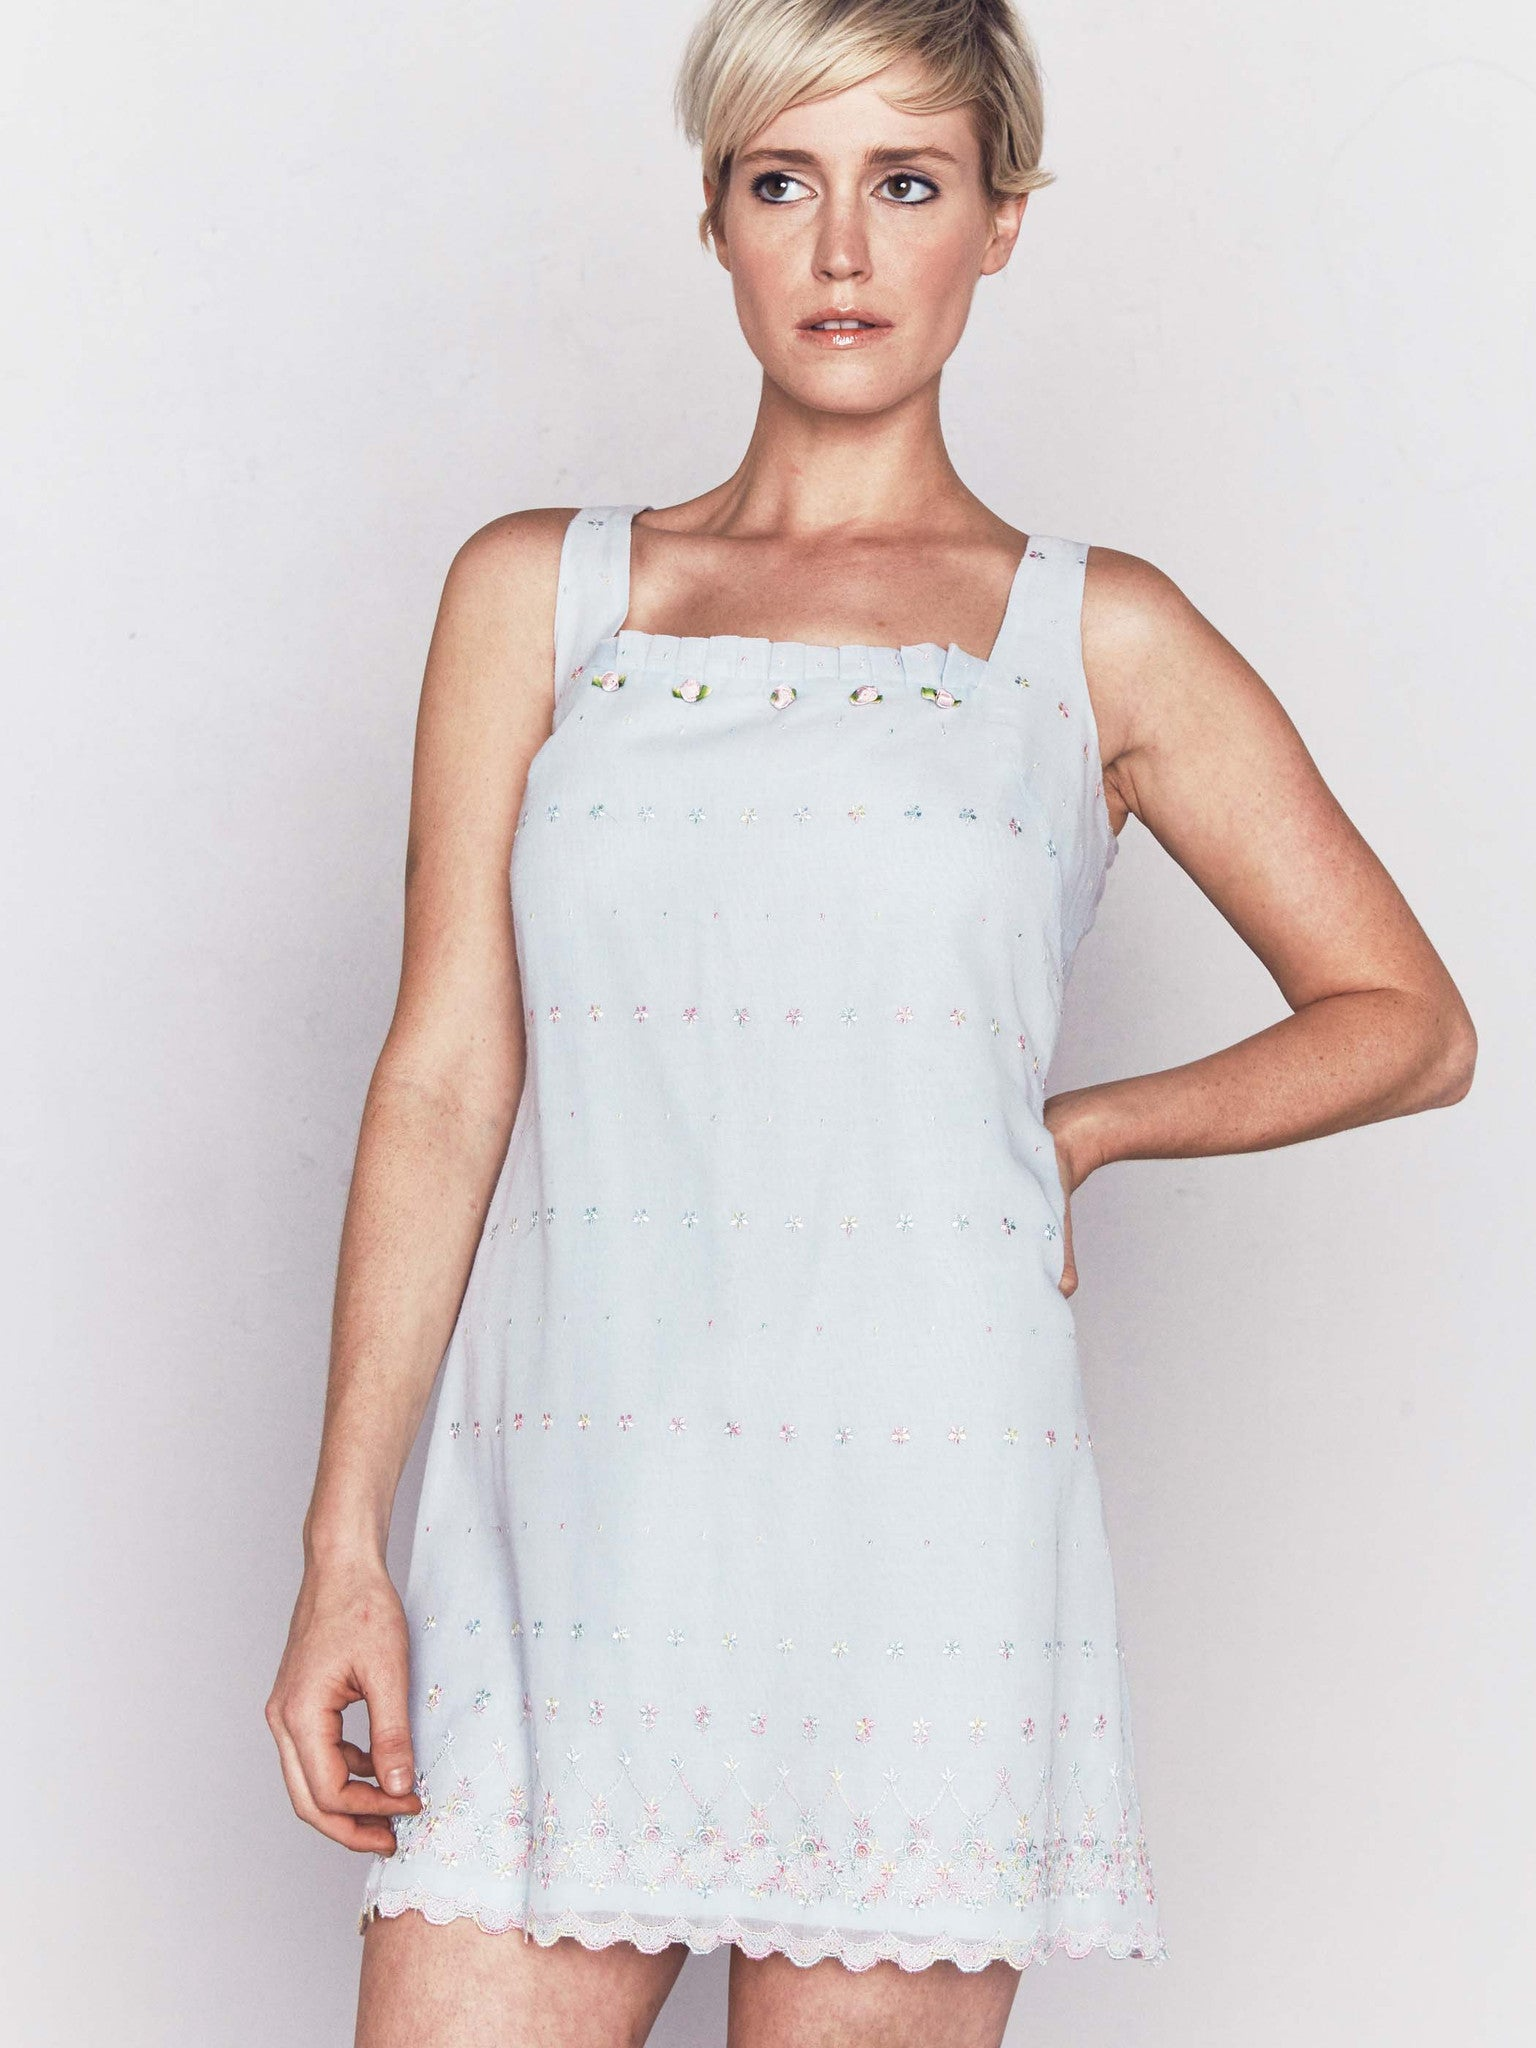 Vintage-Inspired Baby Blue Mini Dress by Tocca